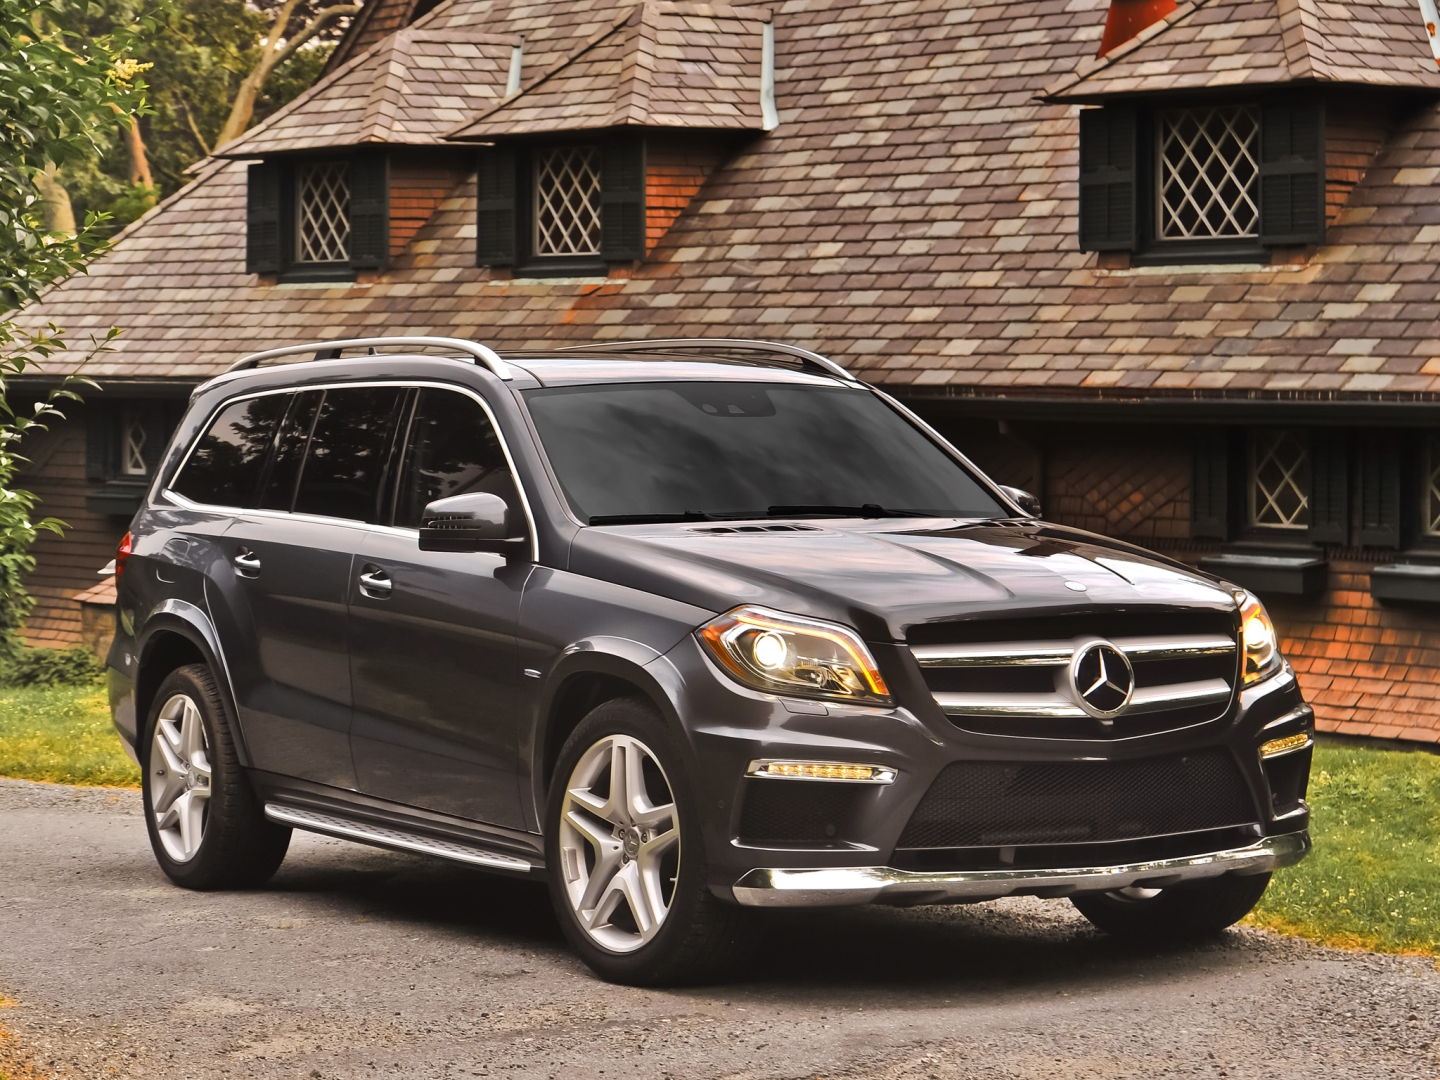 2014 mercedes benz gl class luxury for seven autoevolution for 2014 mercedes benz gl450